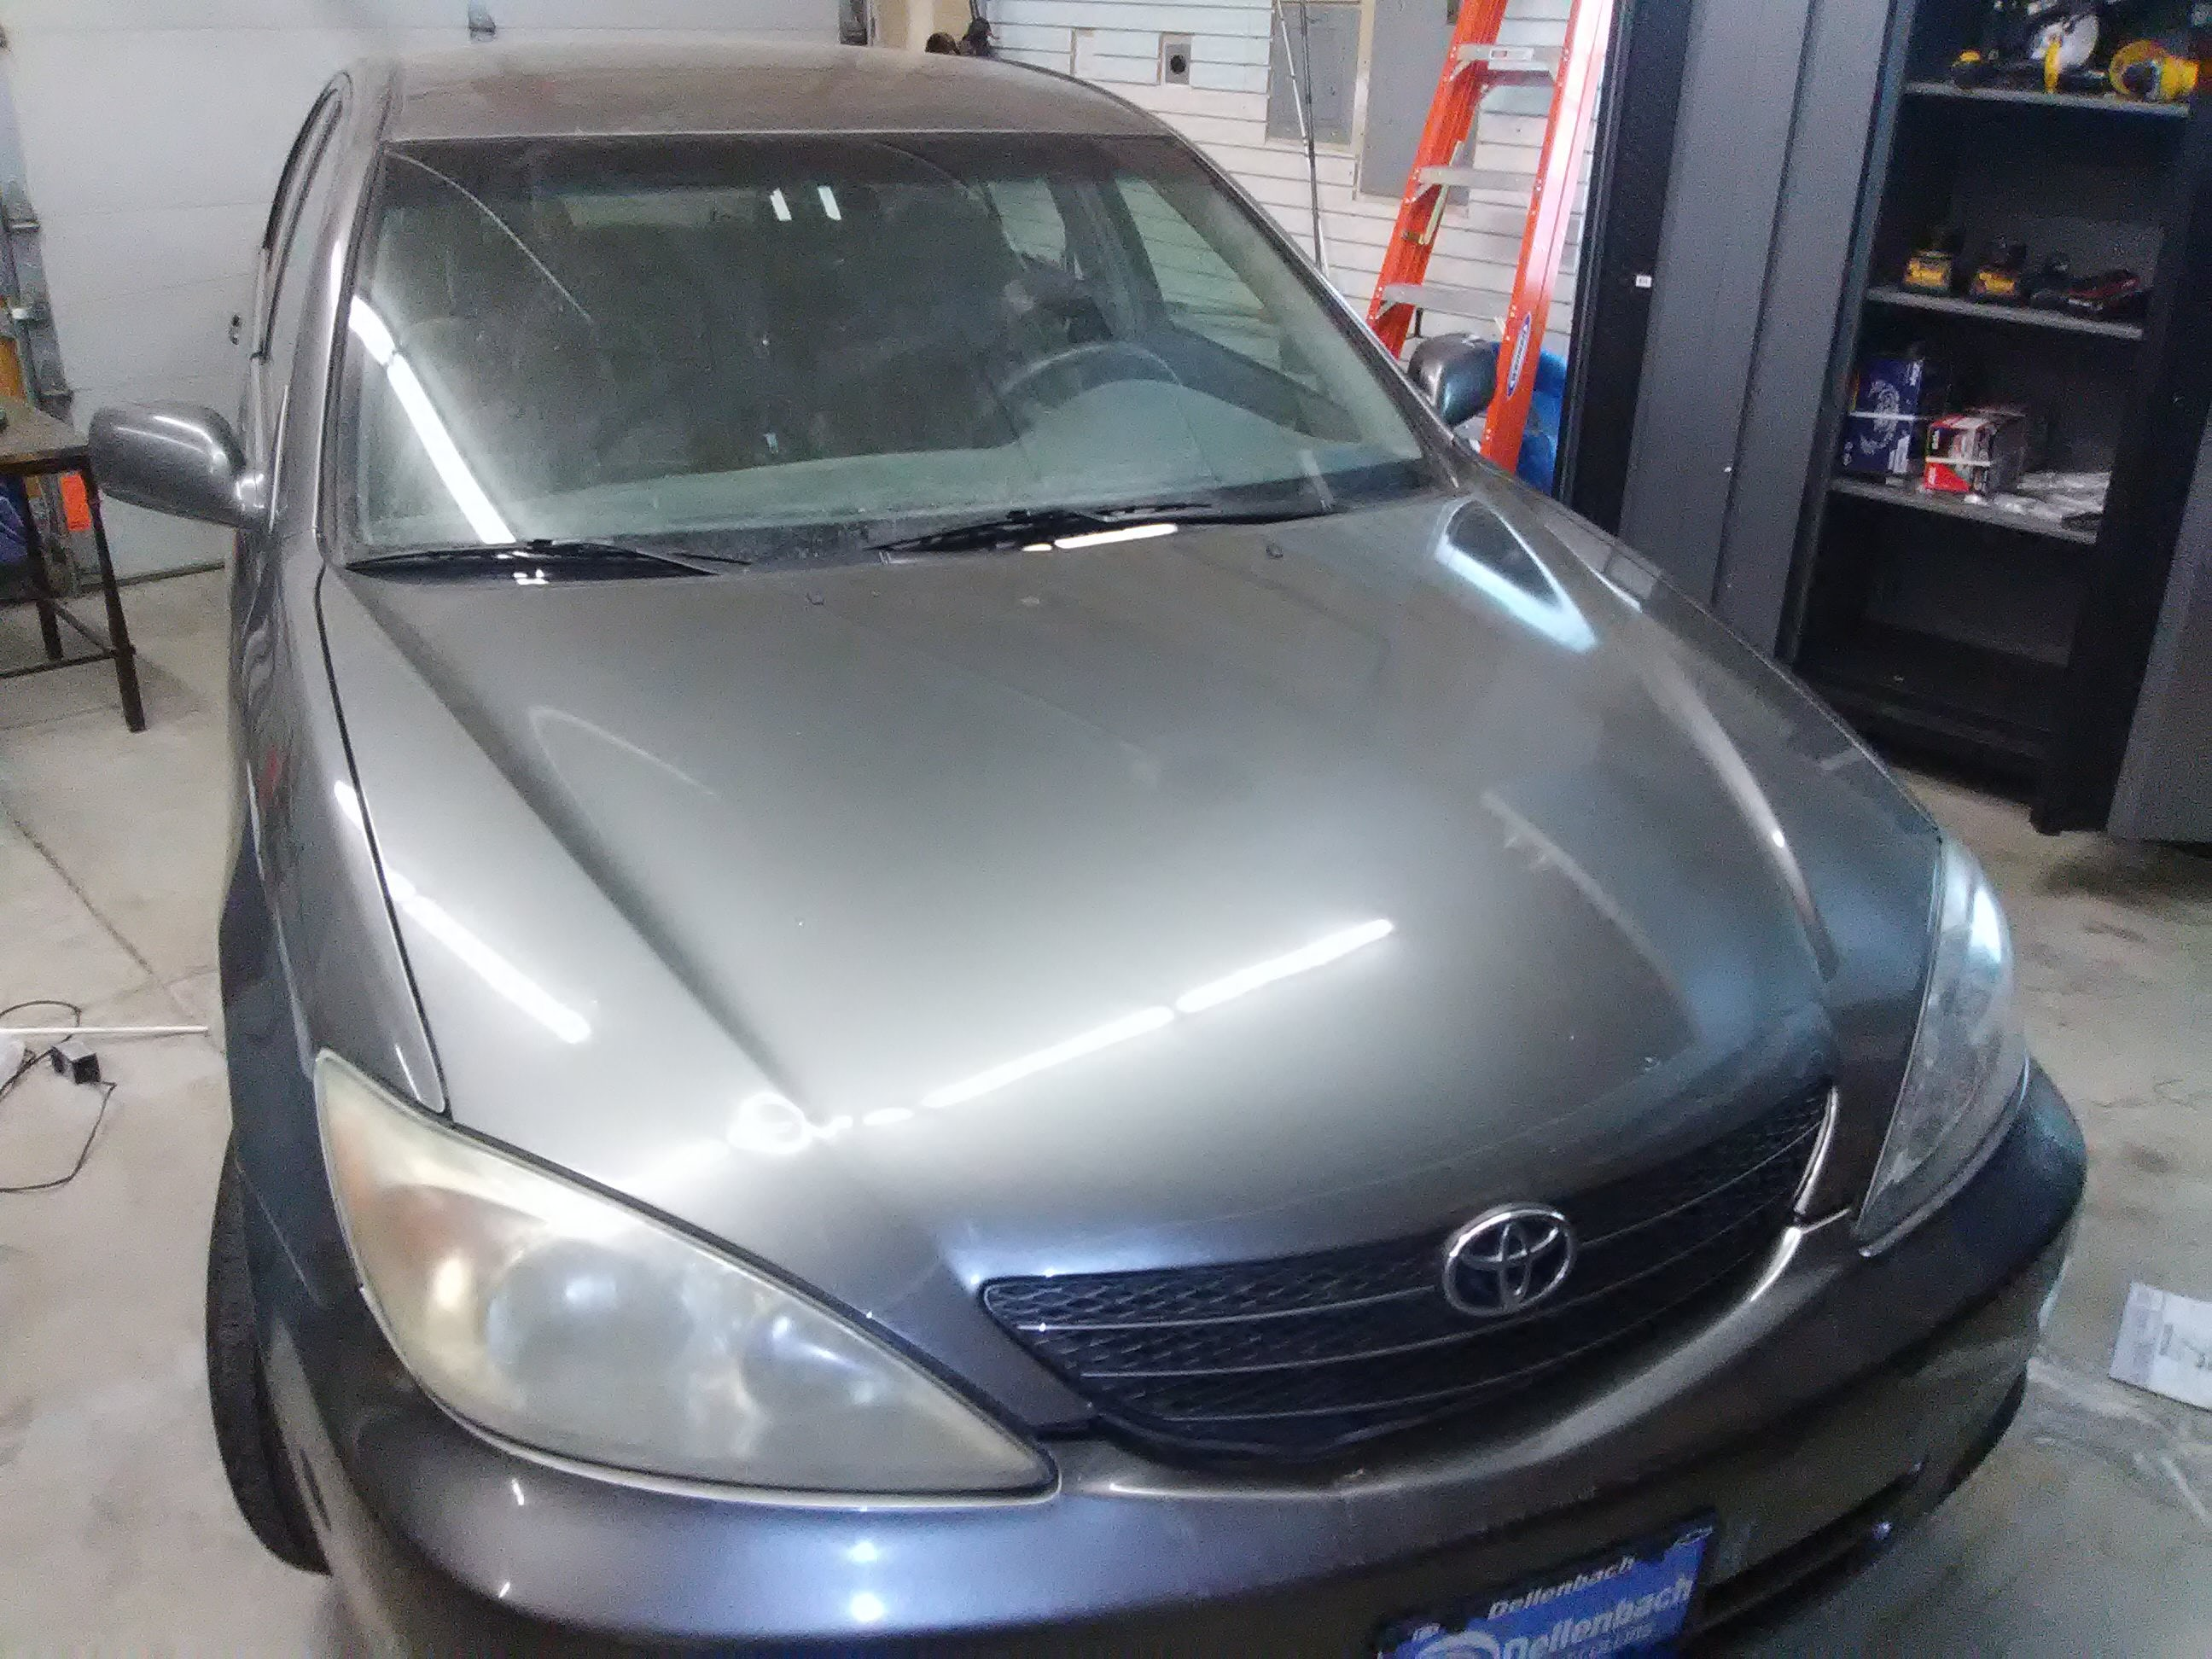 Junk 2004 Toyota Camry in Greeley